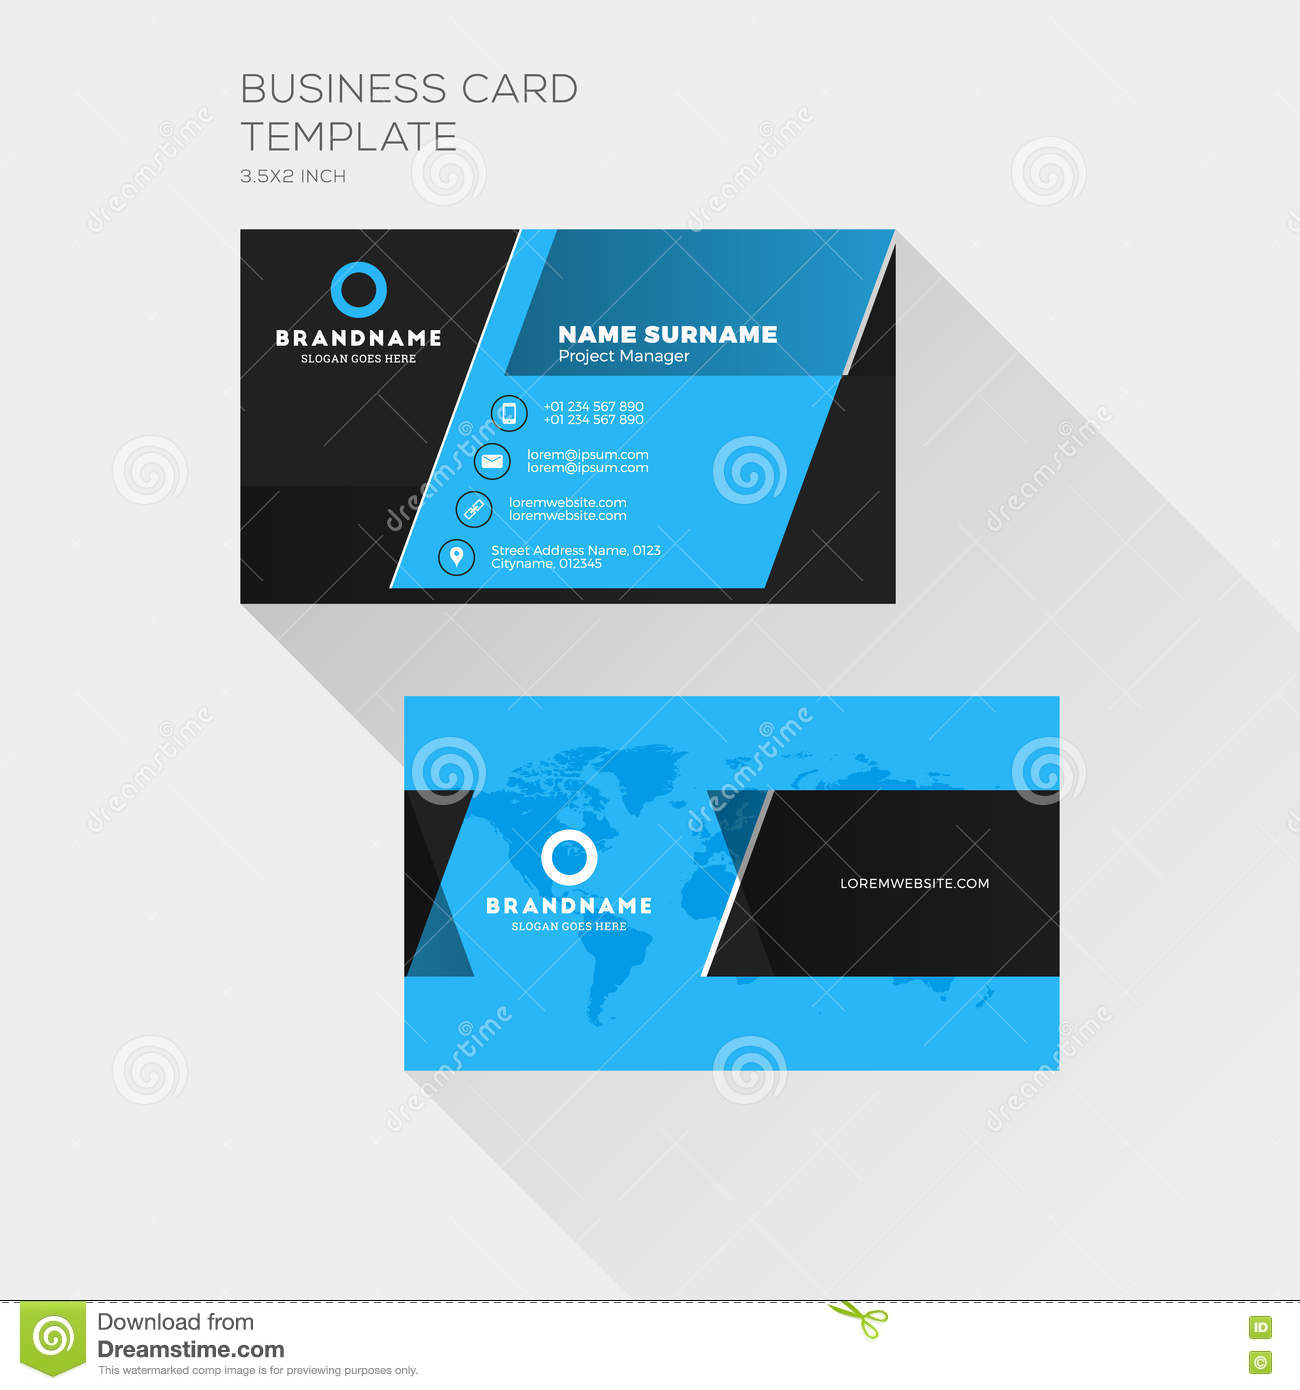 Corporate business card print template personal visiting card stock royalty free vector download corporate business card print template personal visiting card stock vector illustration of creative accmission Images